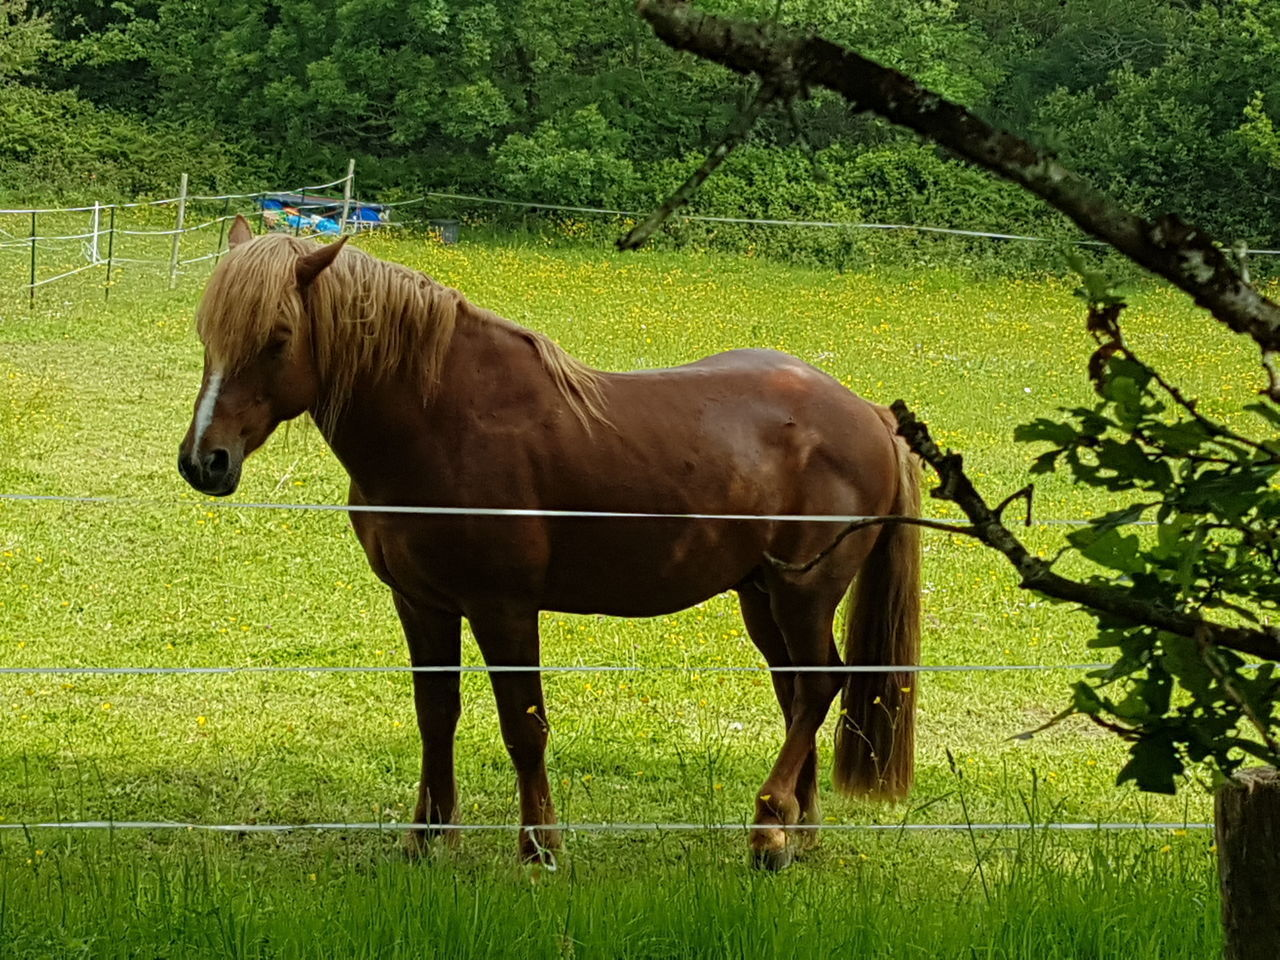 livestock, plant, domestic, mammal, horse, domestic animals, animal themes, pets, field, animal, land, grass, vertebrate, green color, tree, animal wildlife, nature, standing, one animal, day, herbivorous, no people, outdoors